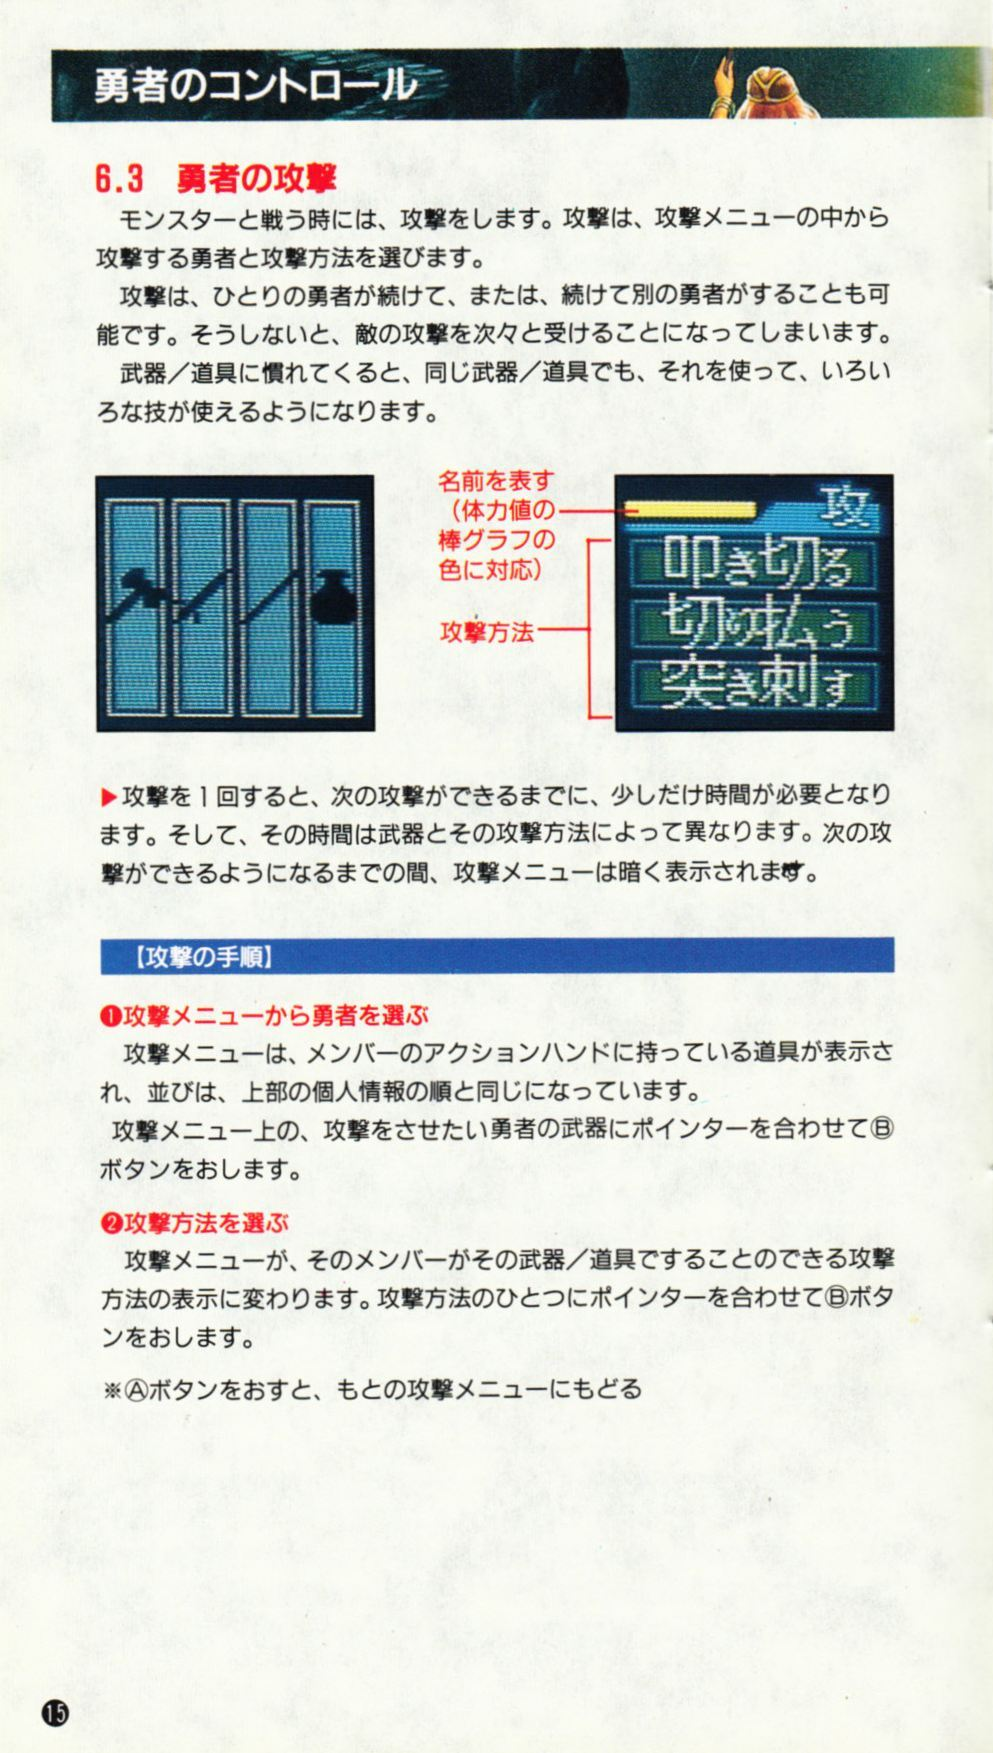 Game - Dungeon Master - JP - Super Famicom - Manual - Page 018 - Scan